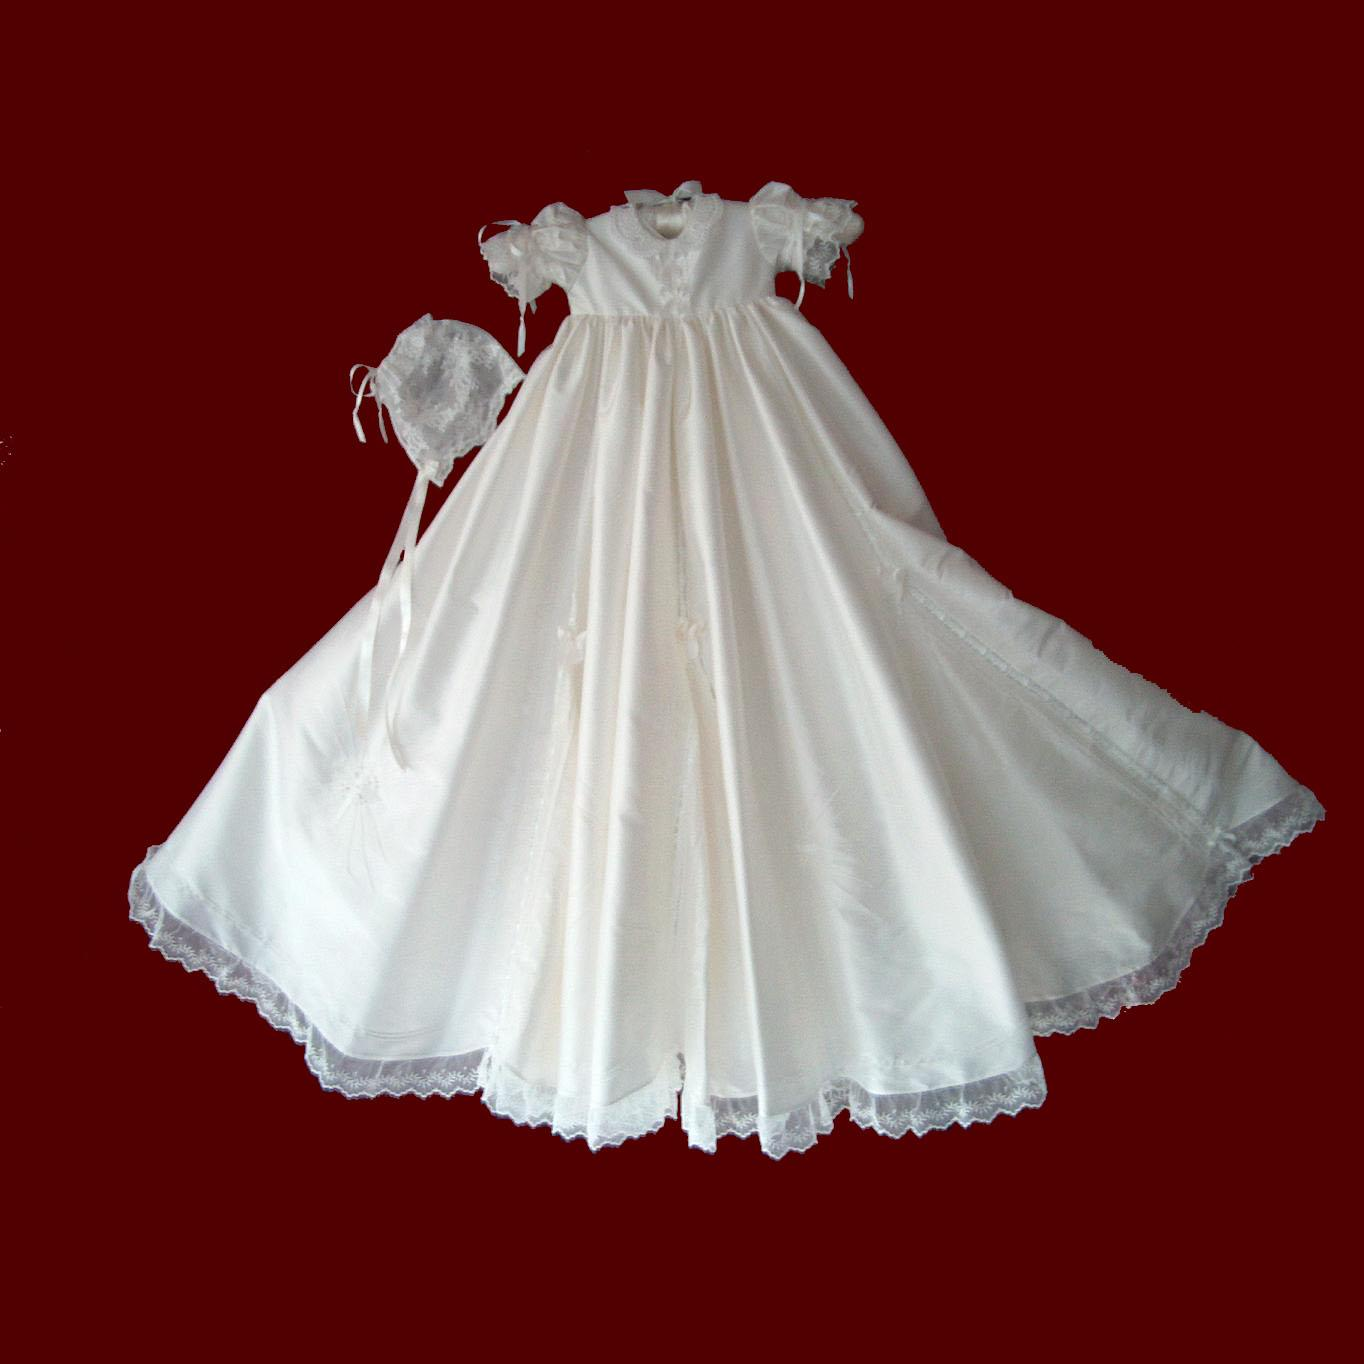 There are so many beautiful names for boys throughout all cultures and countries that it can be hard to narrow down your options. Girls Silk Christening Gown with Gores & Godets - The